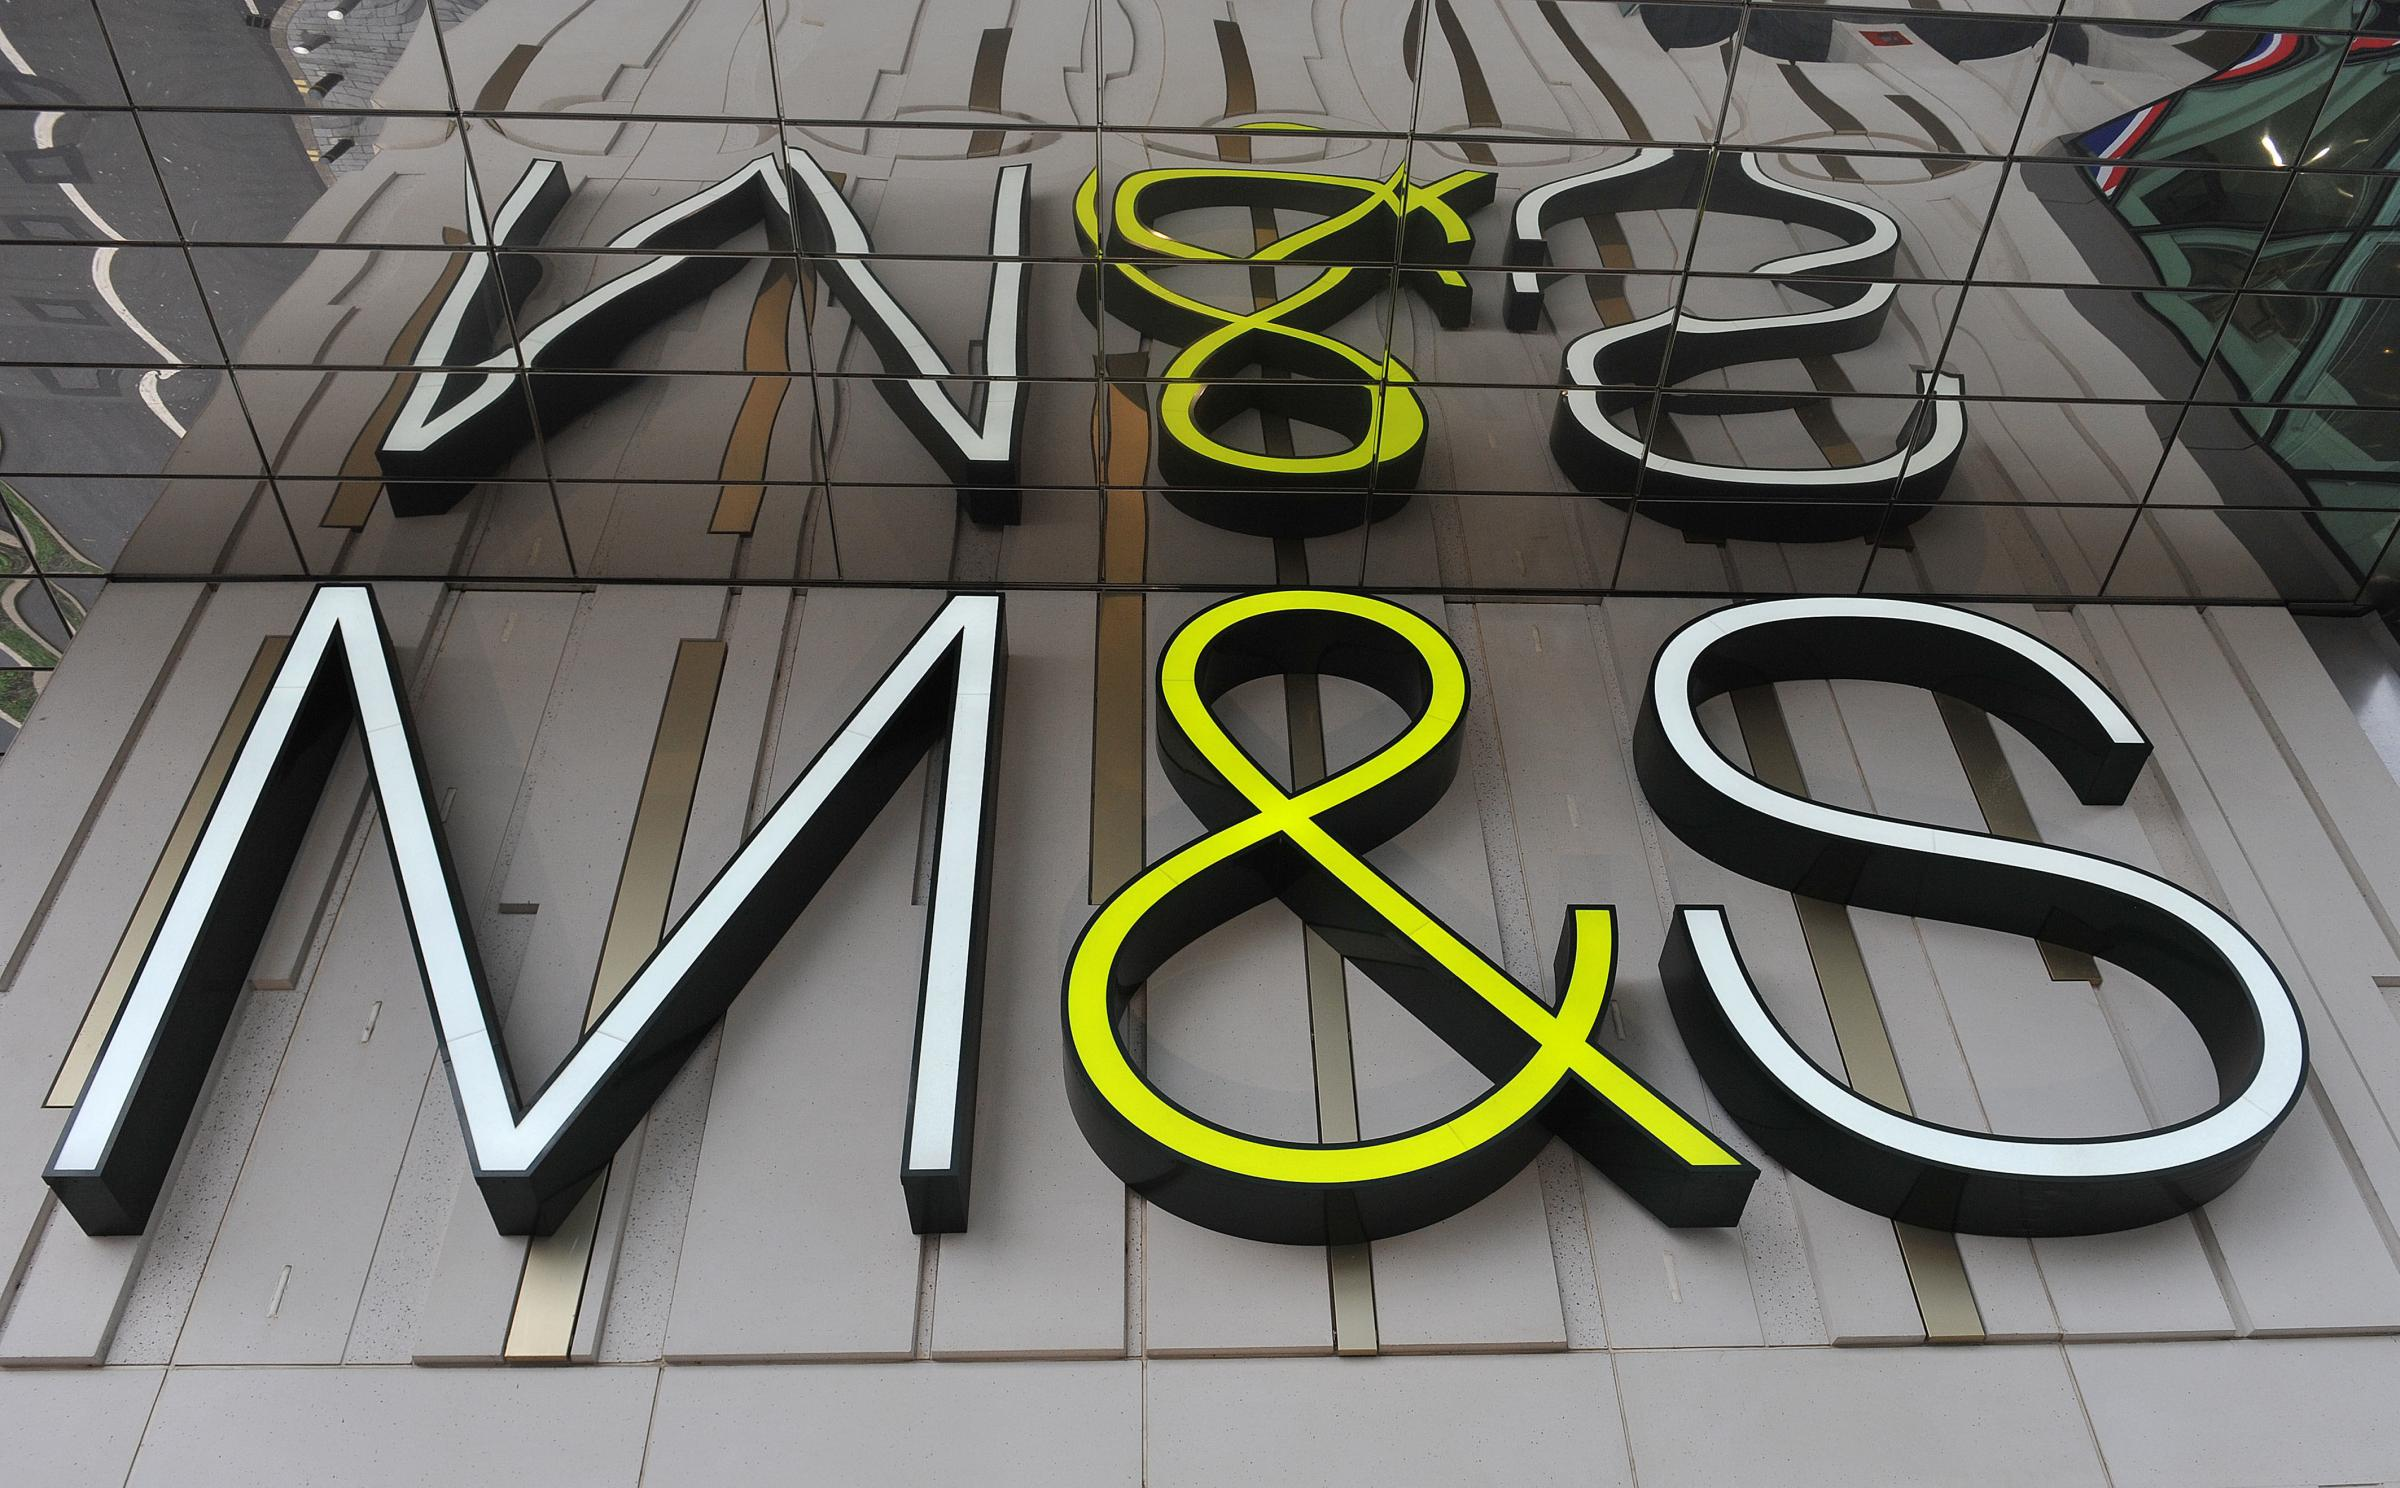 Marks and Spencer said it is to close 100 stores by 2022 as it accelerates a transformation programme